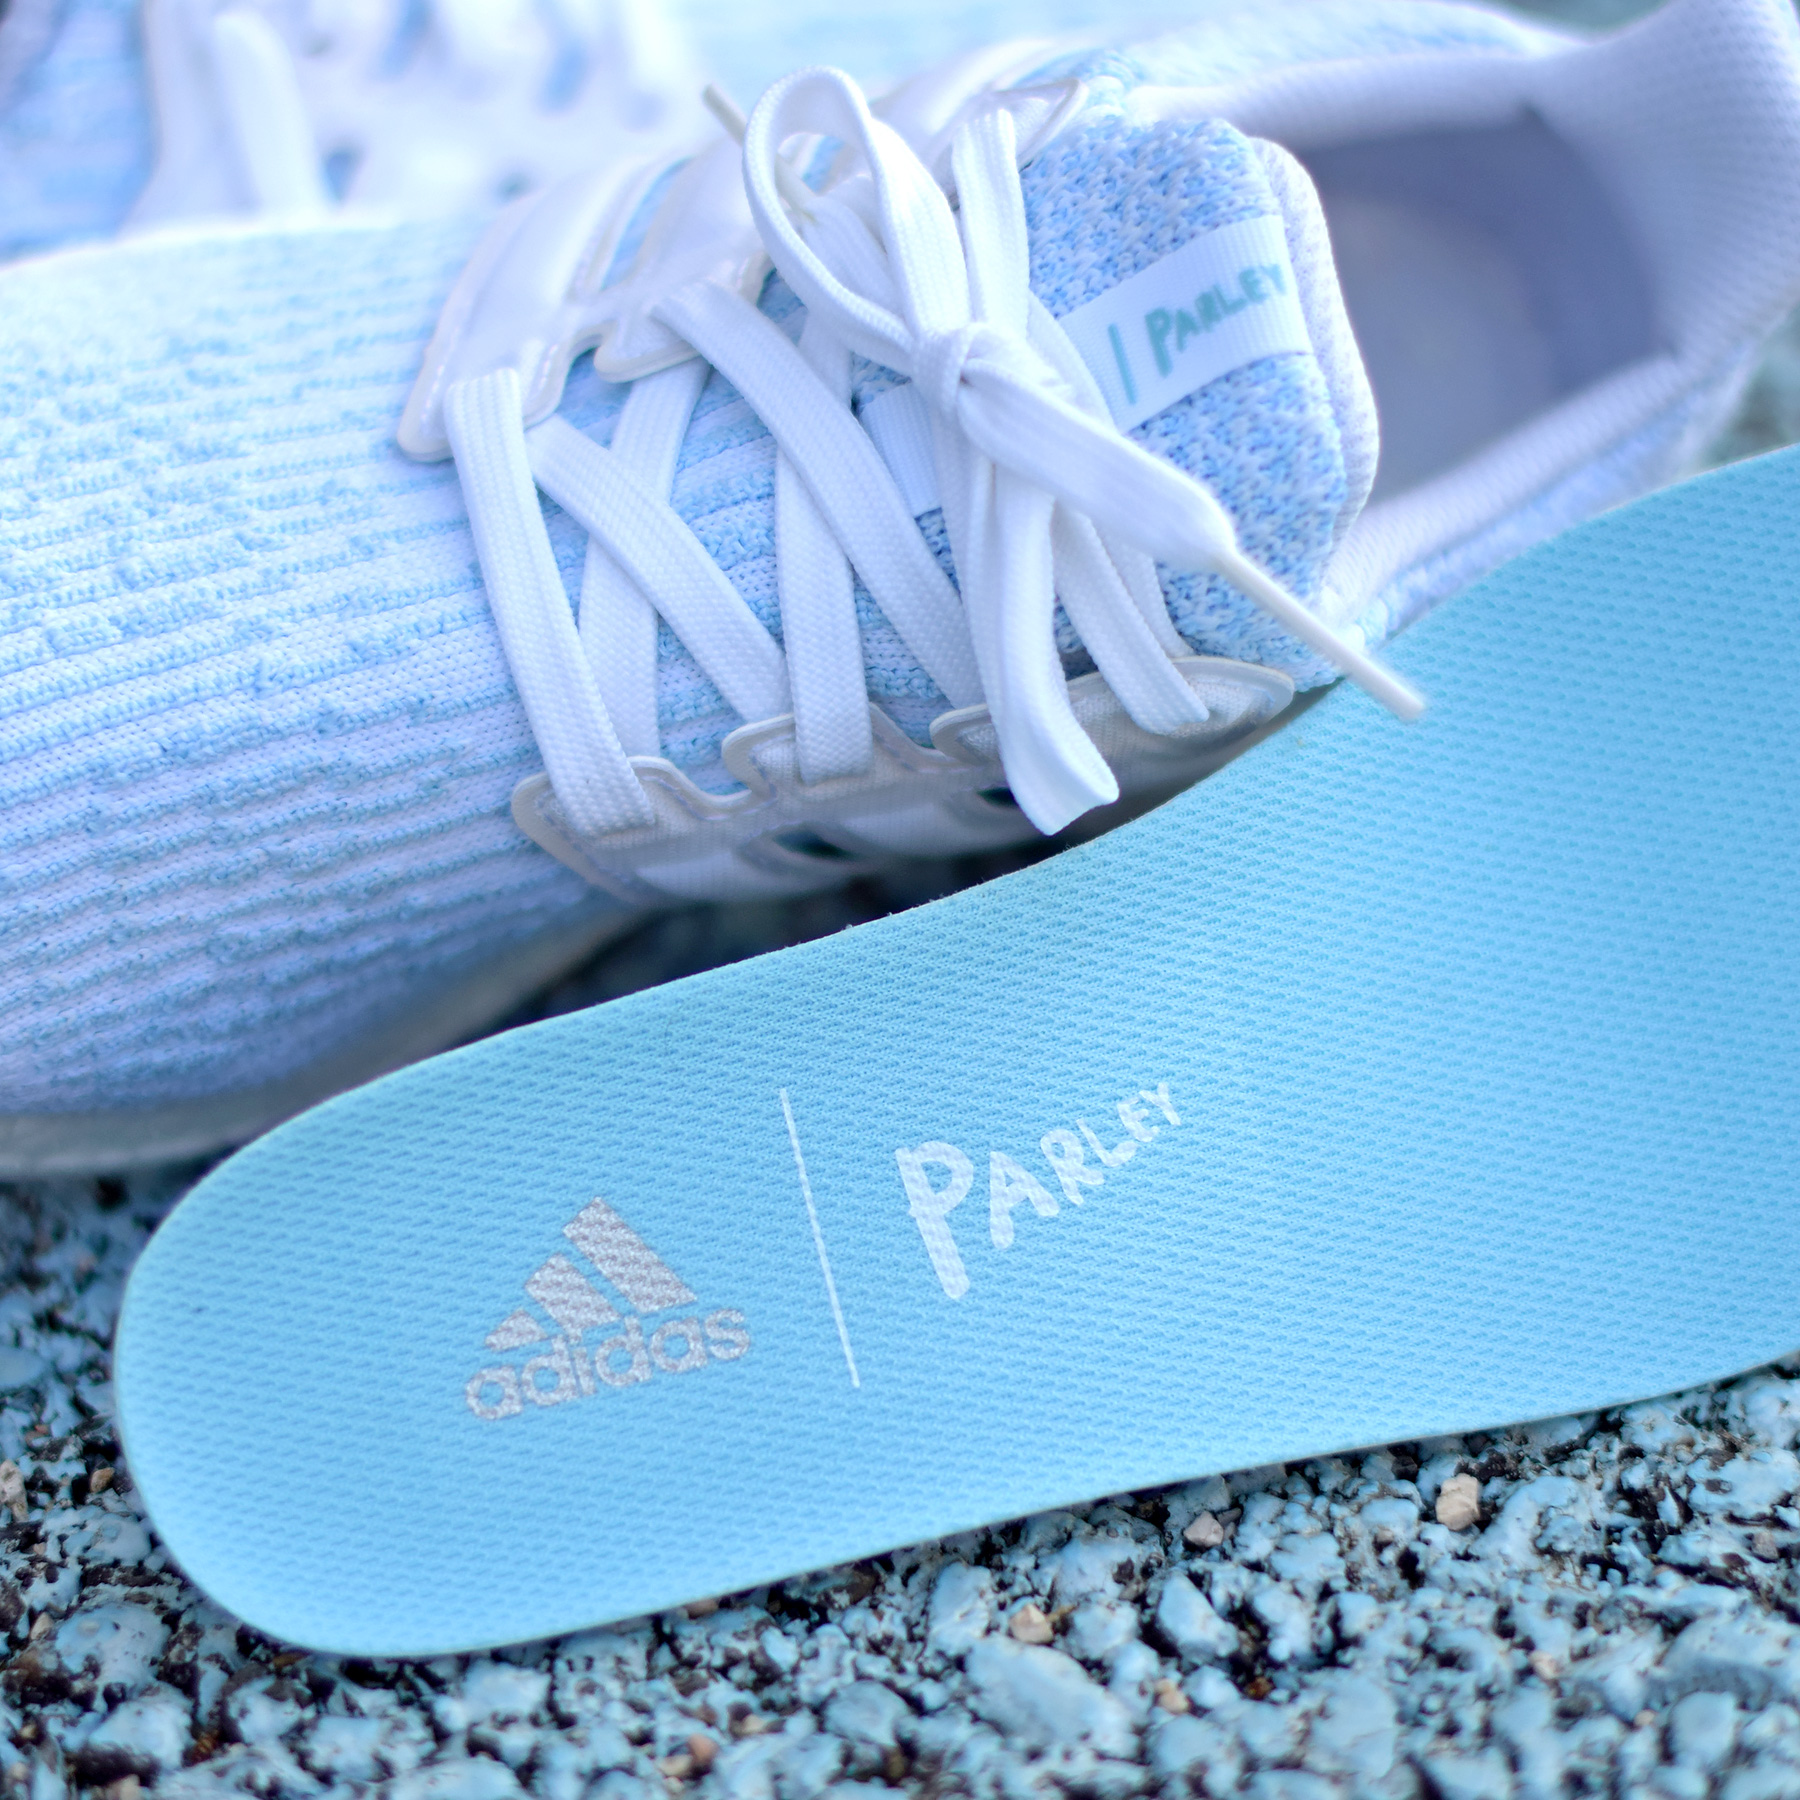 parley adidas ultraboost 3.0 ice blue 5